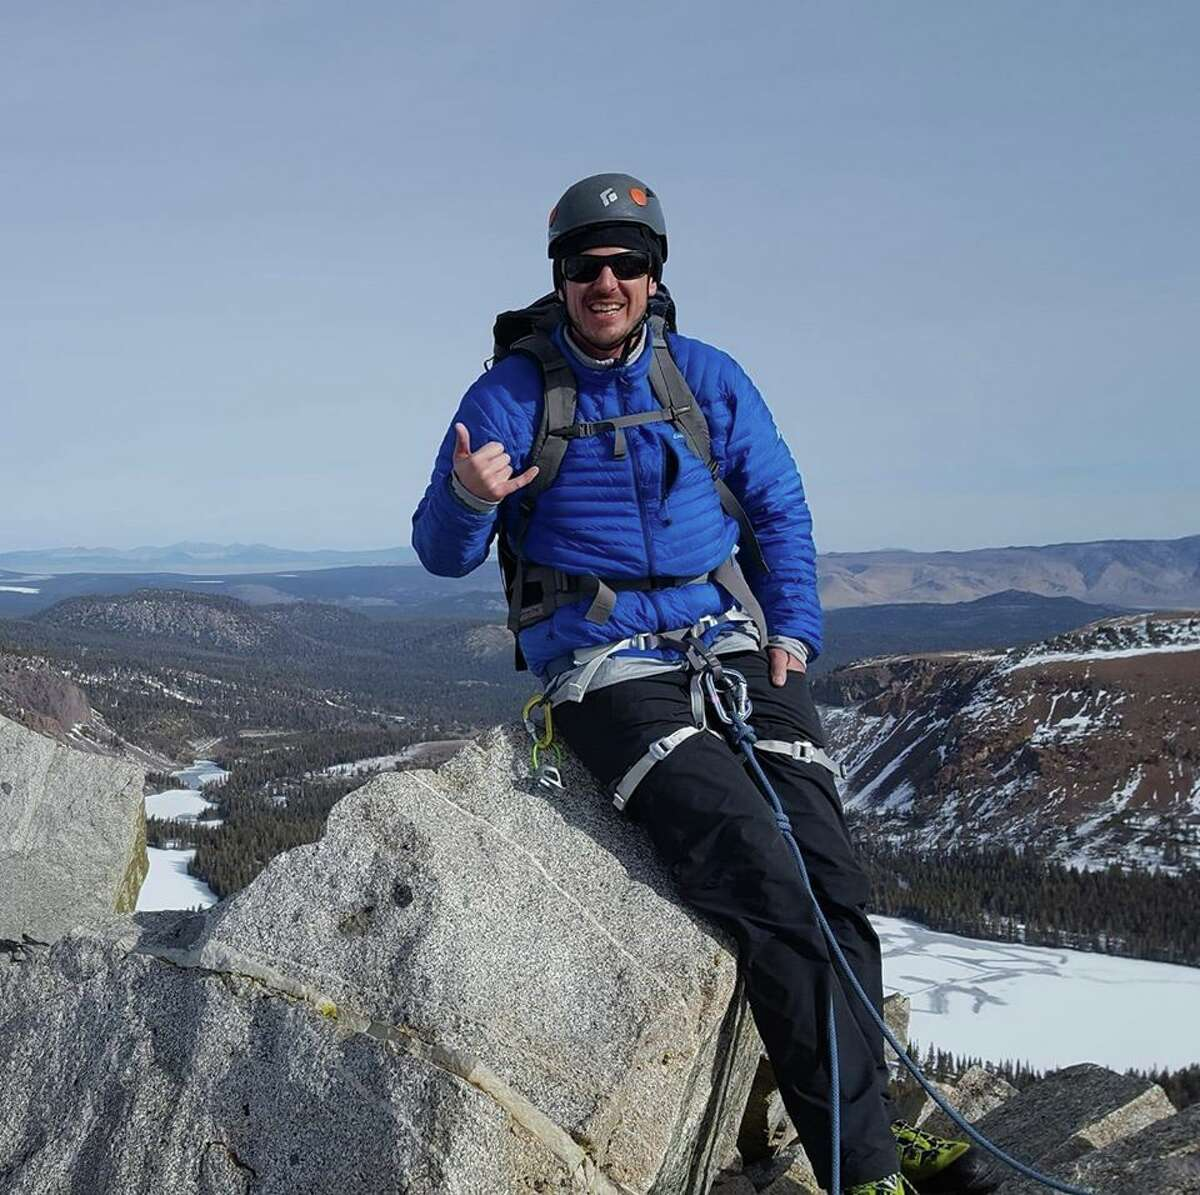 The body of missing Sequoia Kings Canyon National Park hiker Alan Stringer, 40, was found on the Darwin glacier Thursday at the base of Mount Darwin.